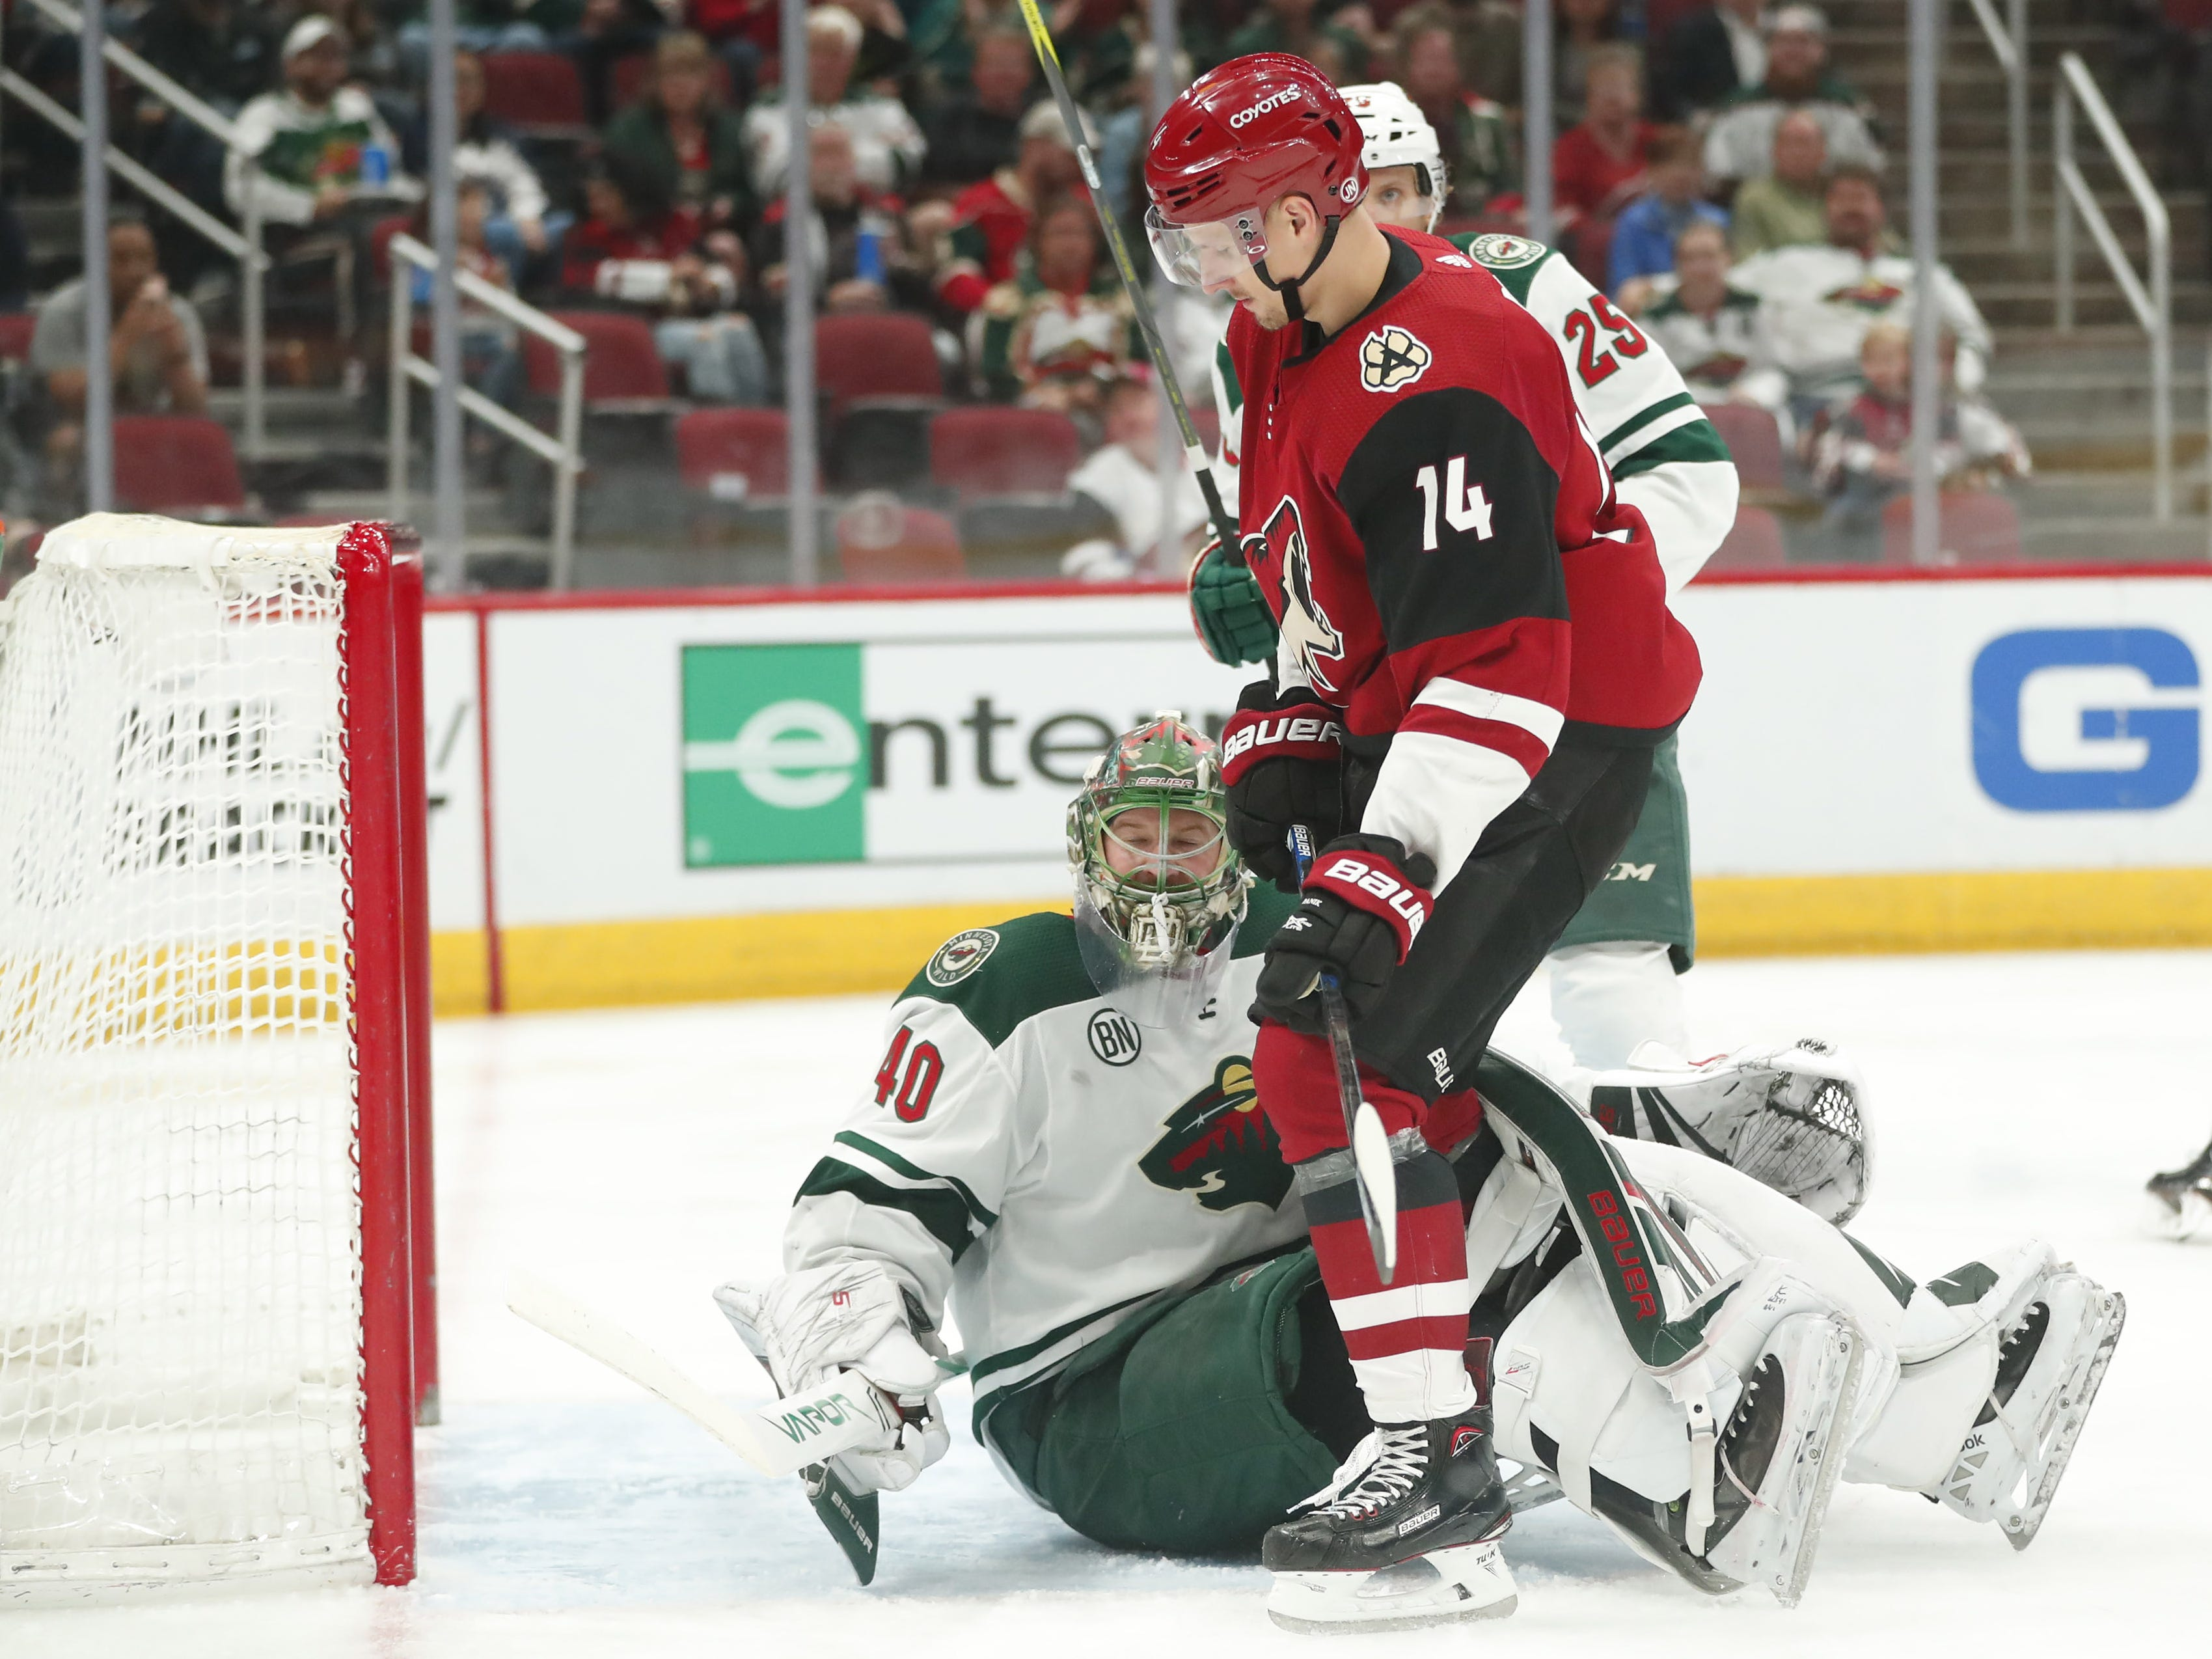 Arizona Coyotes right wing Richard Panik (14) gets tangled up with Minnesota Wild goaltender Devan Dubnyk (40) during the second period in Glendale March 31, 2019. Panik was called for goalie interference.